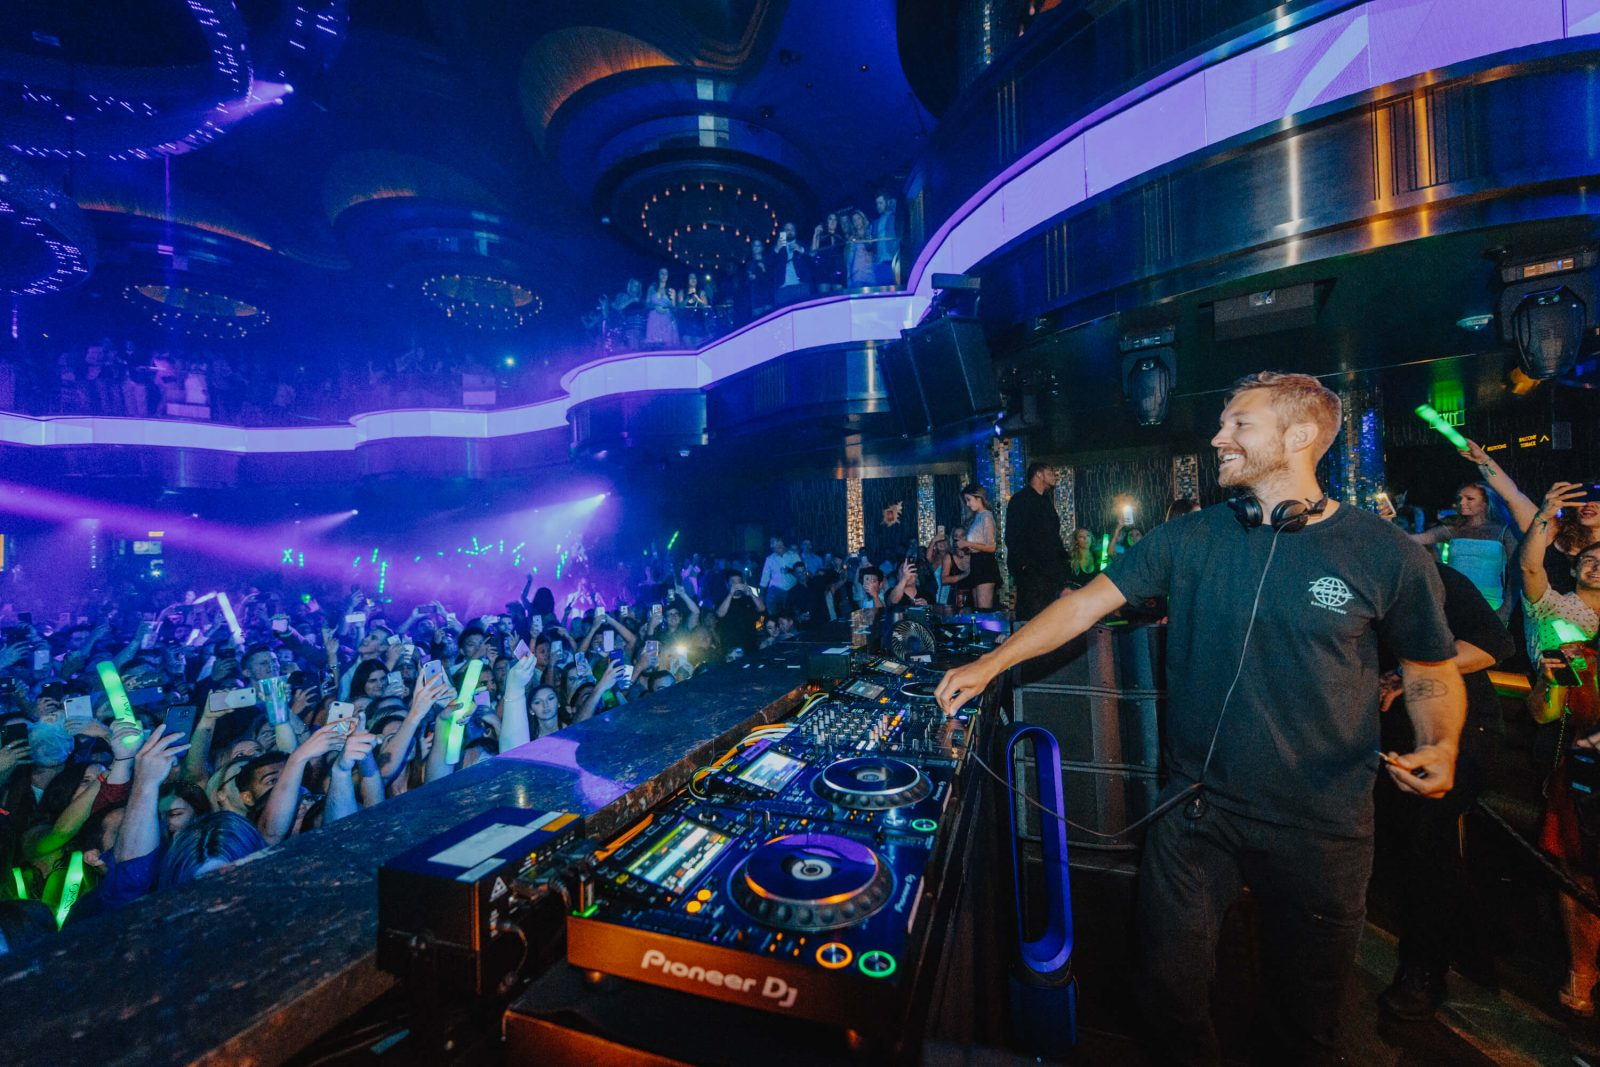 Calvin Harris entertains the crowd at Omnia nightclub inside Caesar's Palace Las Vegas